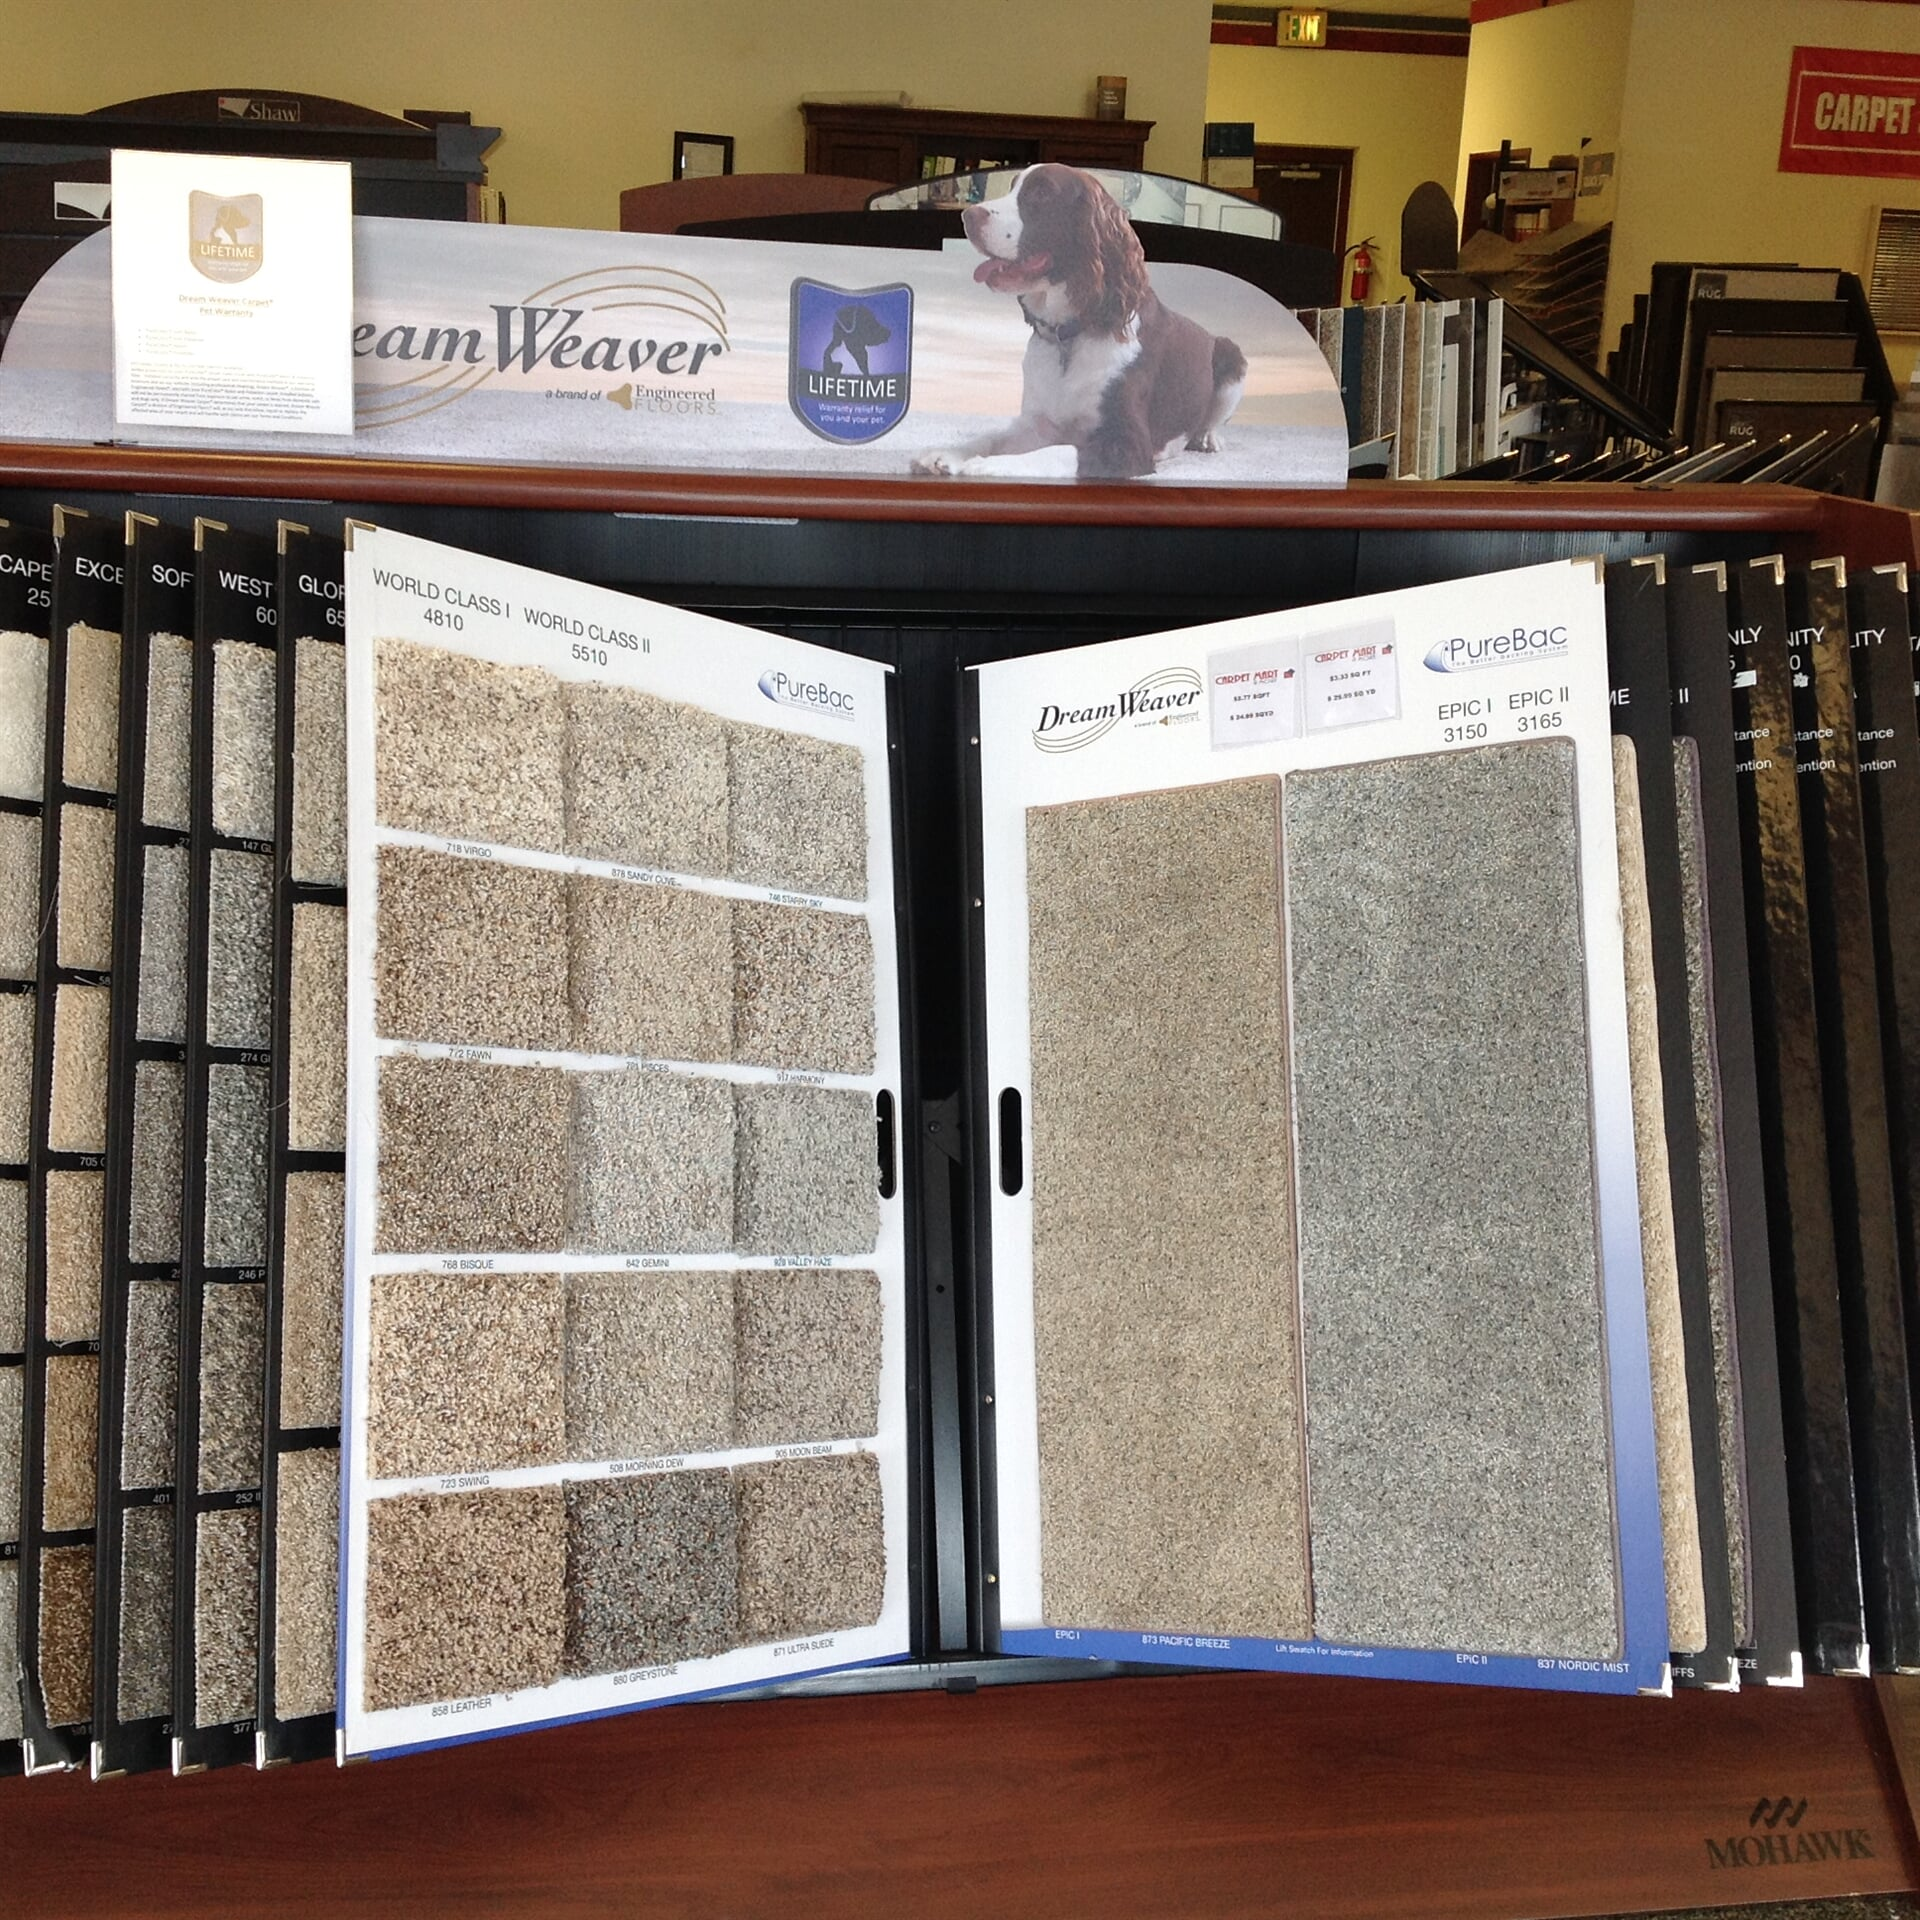 Carpet in Centennial, CO from the Carpet Mart and More Flooring Center showroom